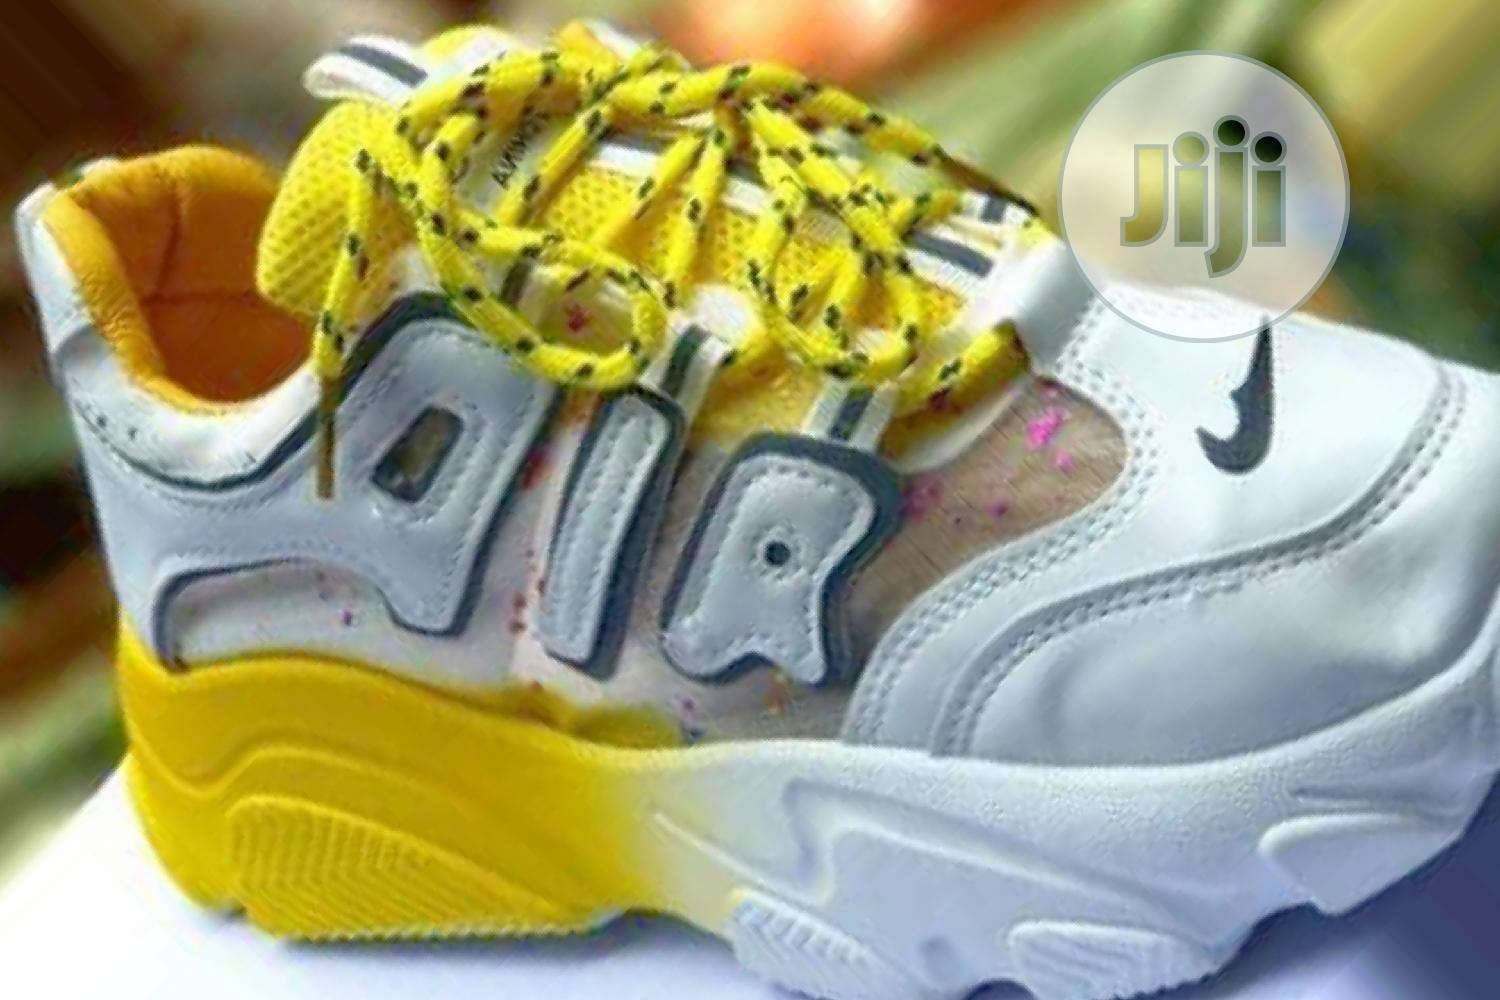 Quality Ladies Fashion Sneakers Shoe | Shoes for sale in Ikeja, Lagos State, Nigeria